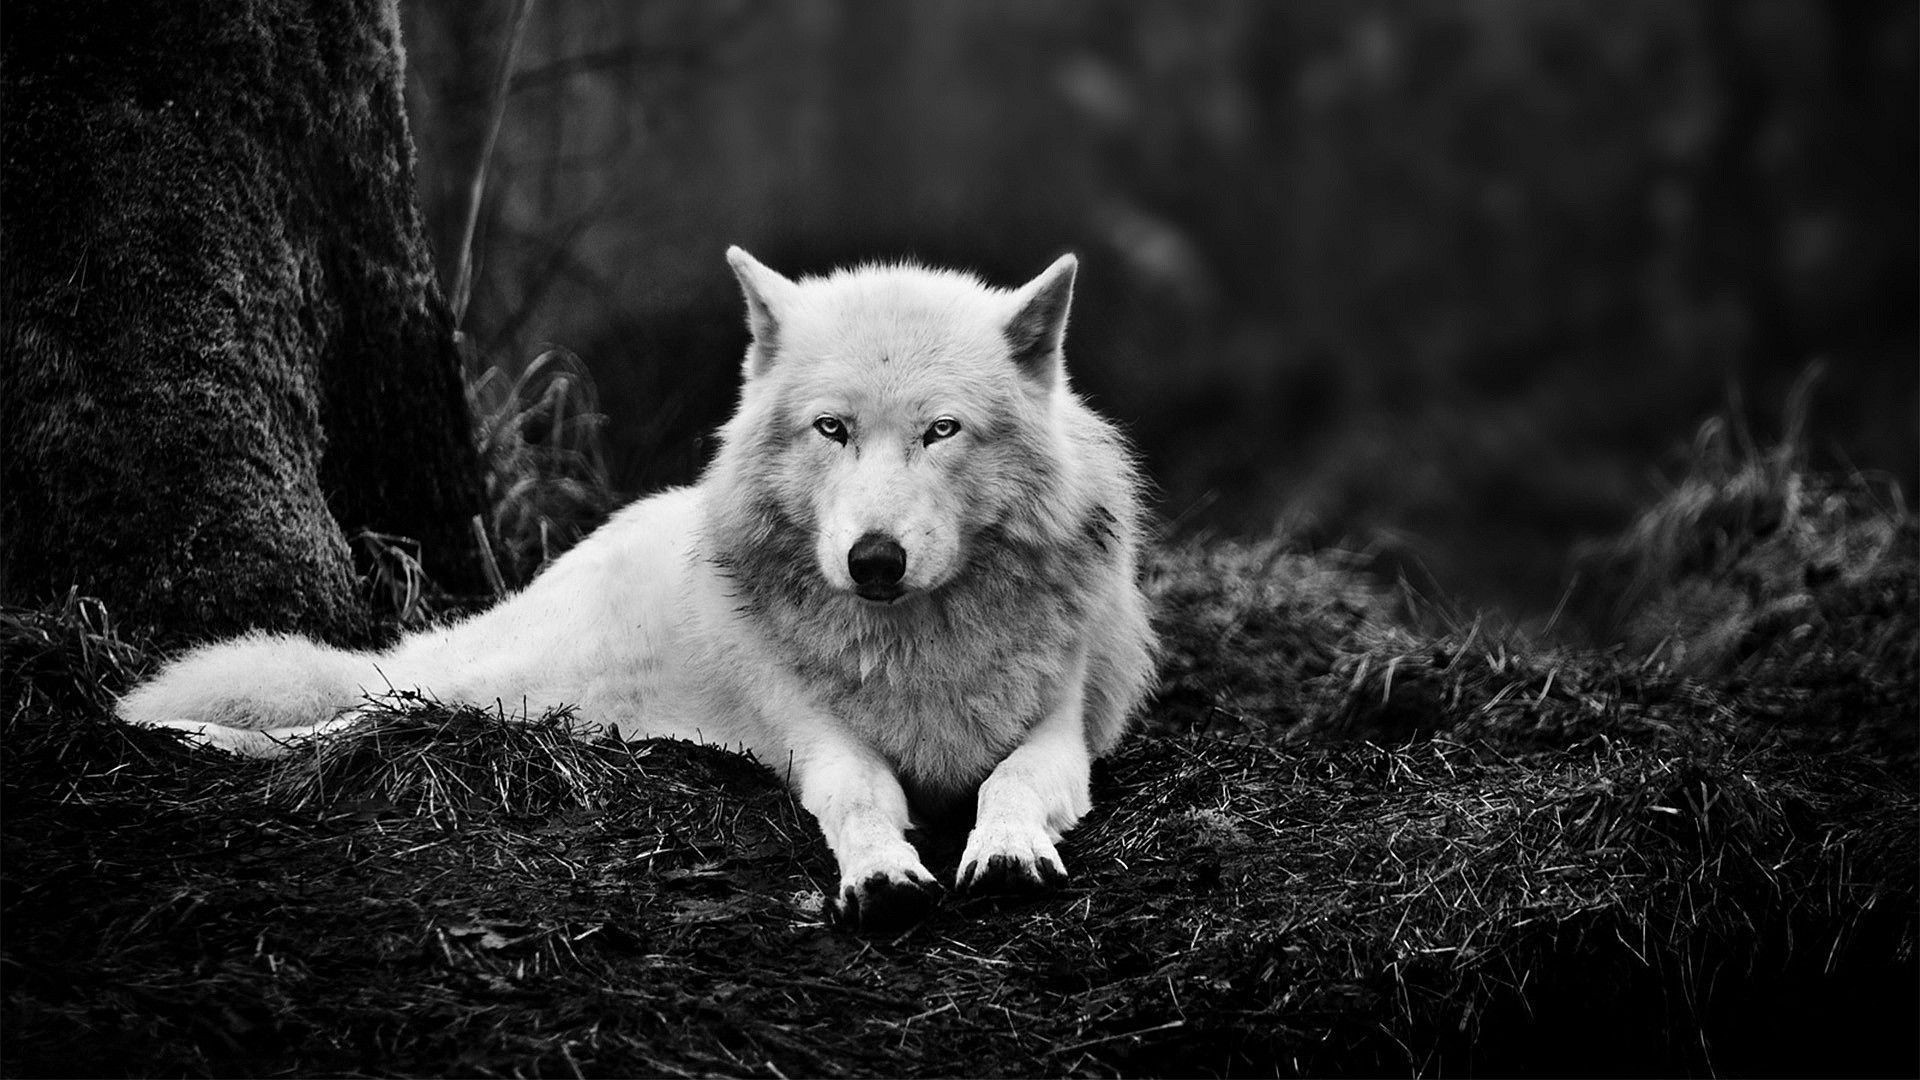 wolf wallpaper hd ·① download free amazing full hd backgrounds for